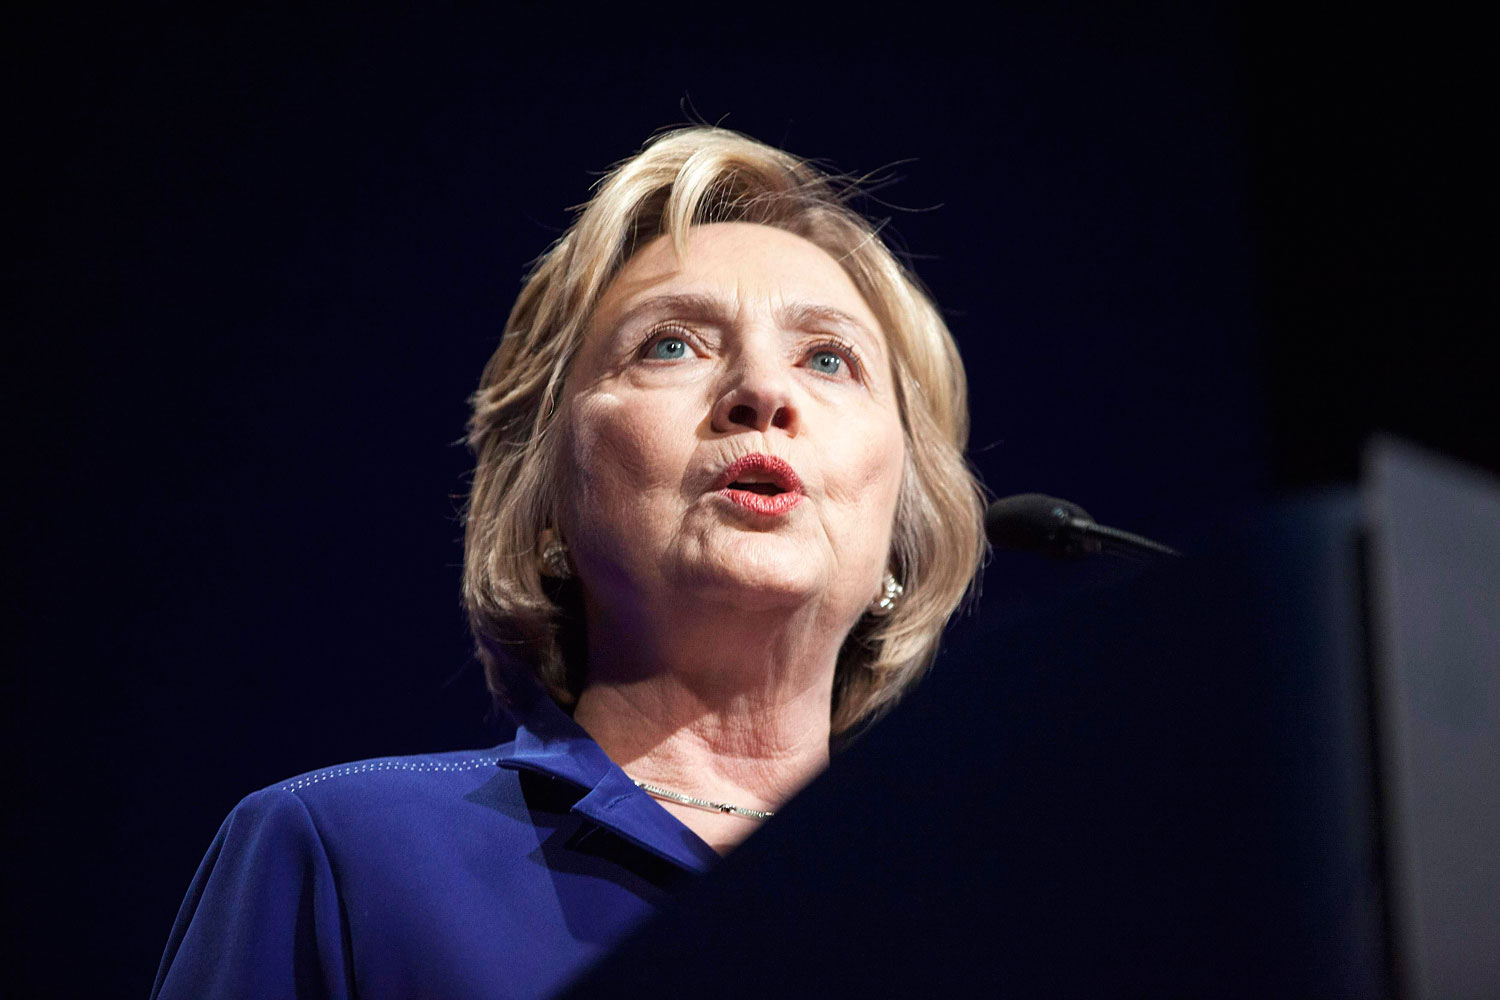 Former Secretary of State Hillary Clinton welcomes more than 1,000 College Students Leaders for the 2014 Meeting of the Clinton Global Initiative University at Arizona State University in Tempe, Arizona, March 21, 2014.